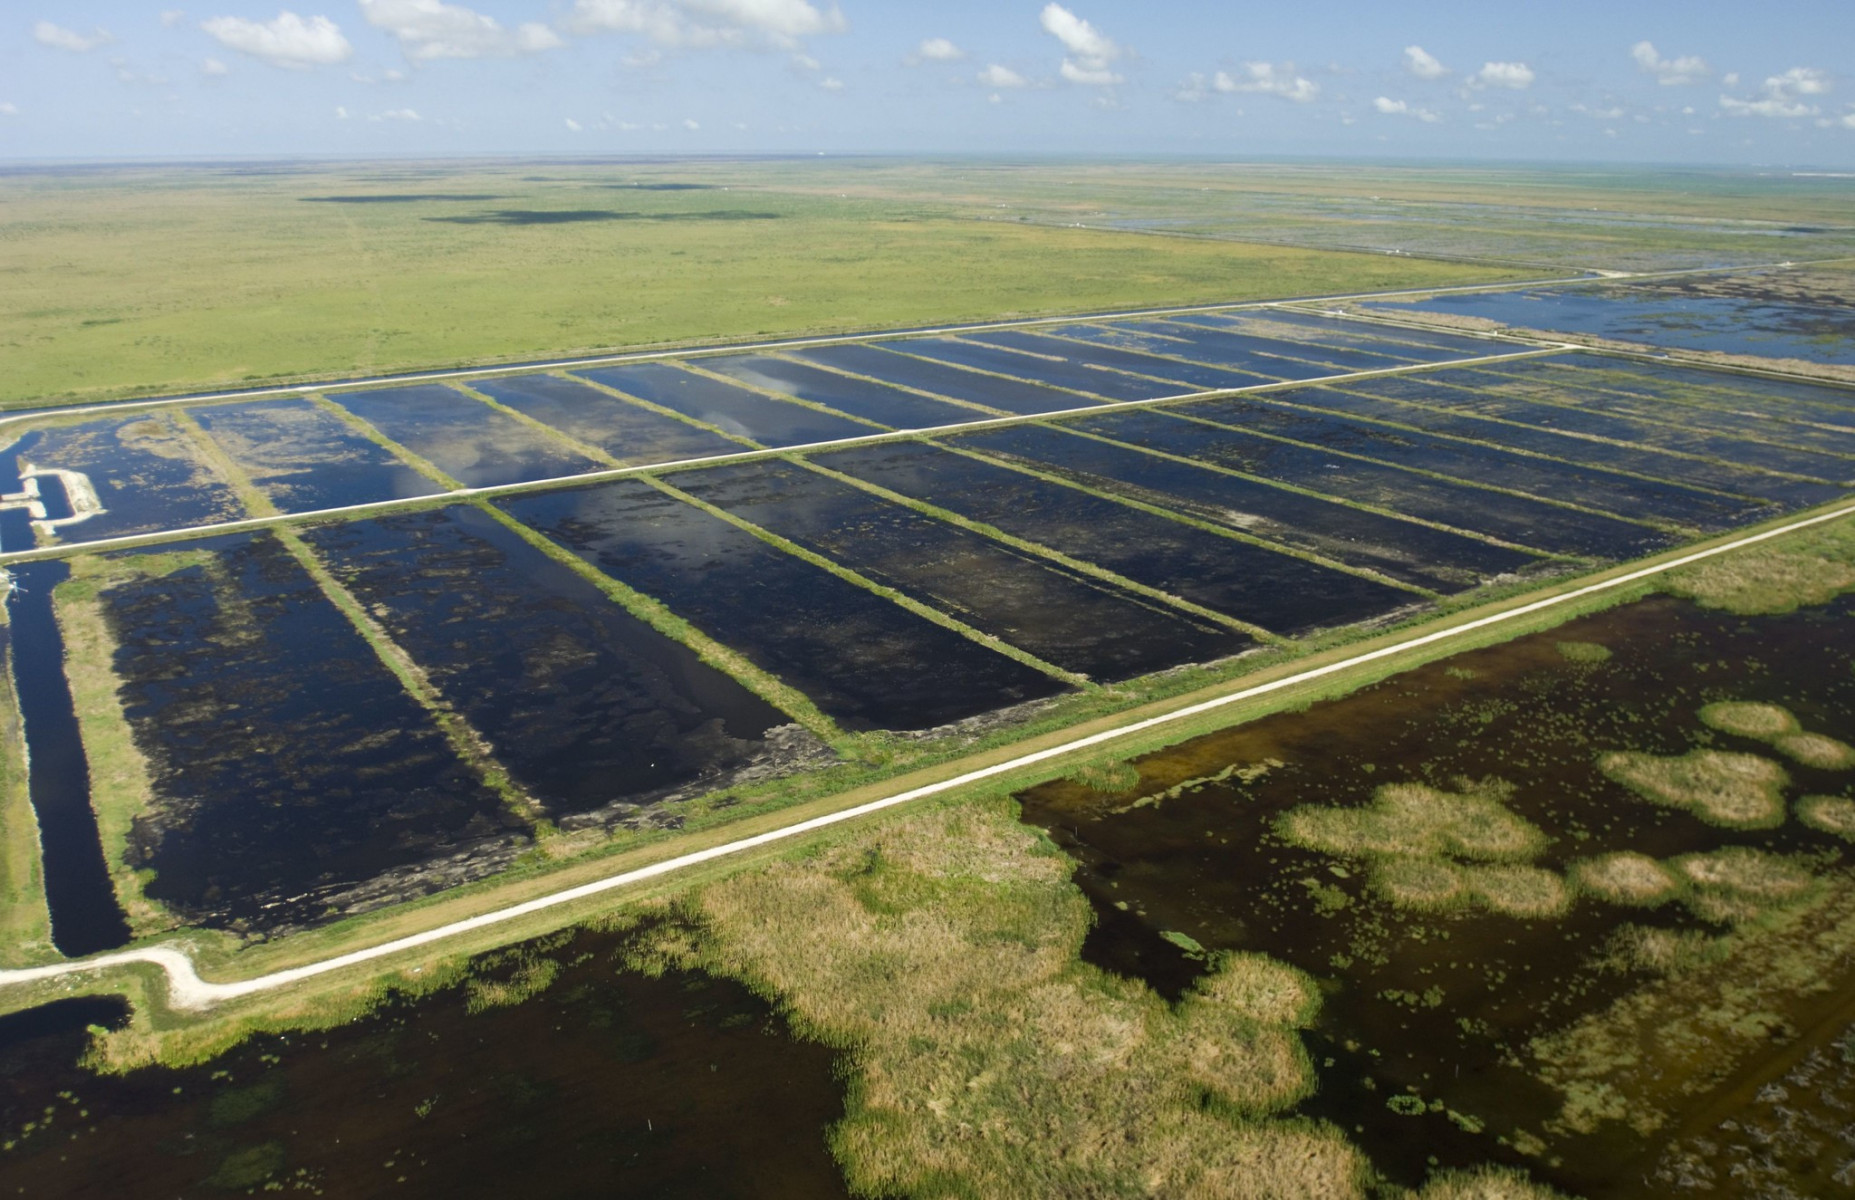 Stormwater treatment in the Florida Everglades